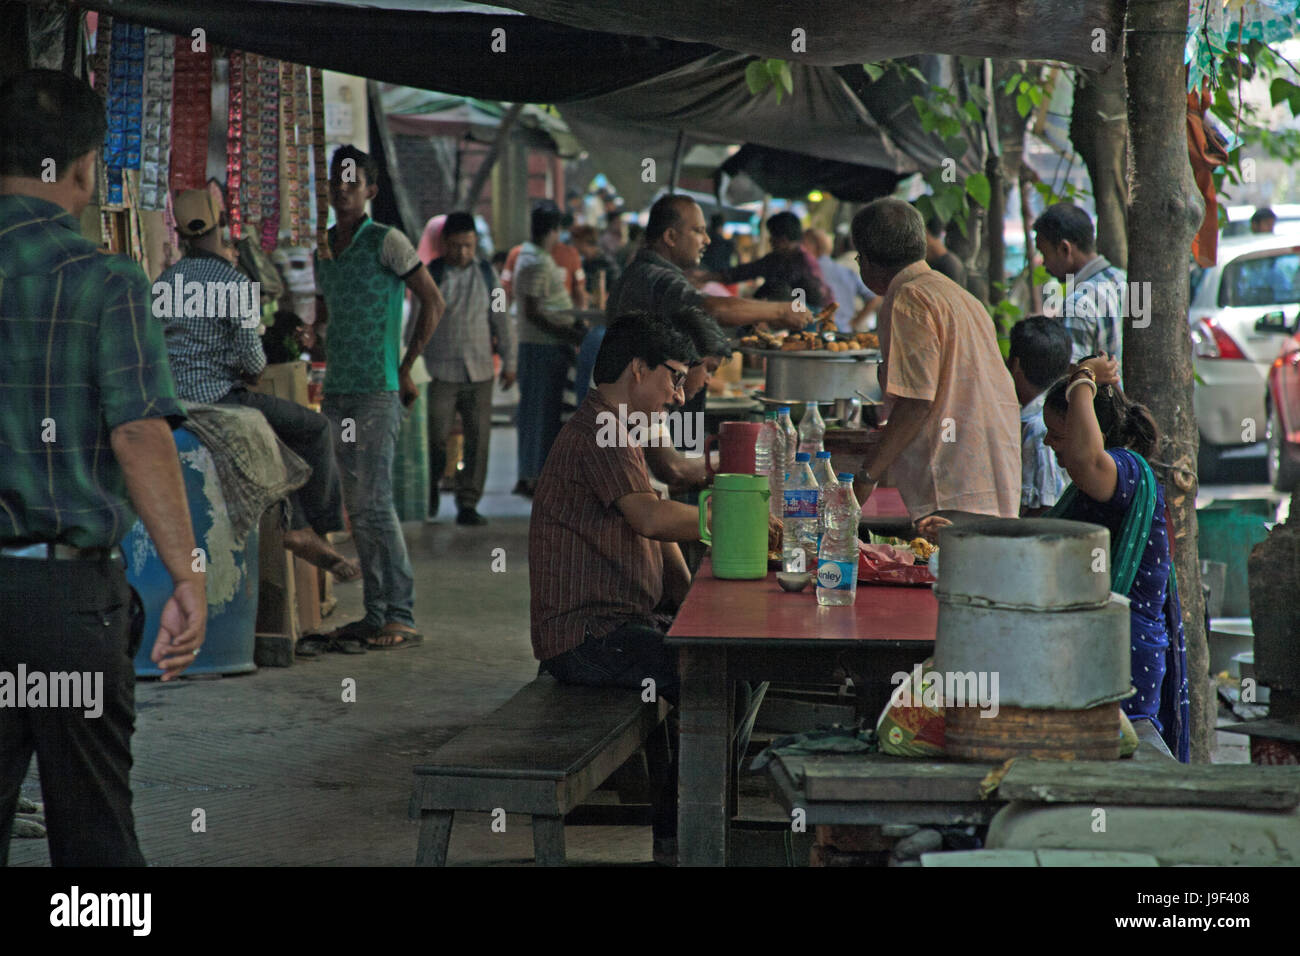 People eating street food on a street in central Kolkata - Calcutta -West Bengal India - Stock Image